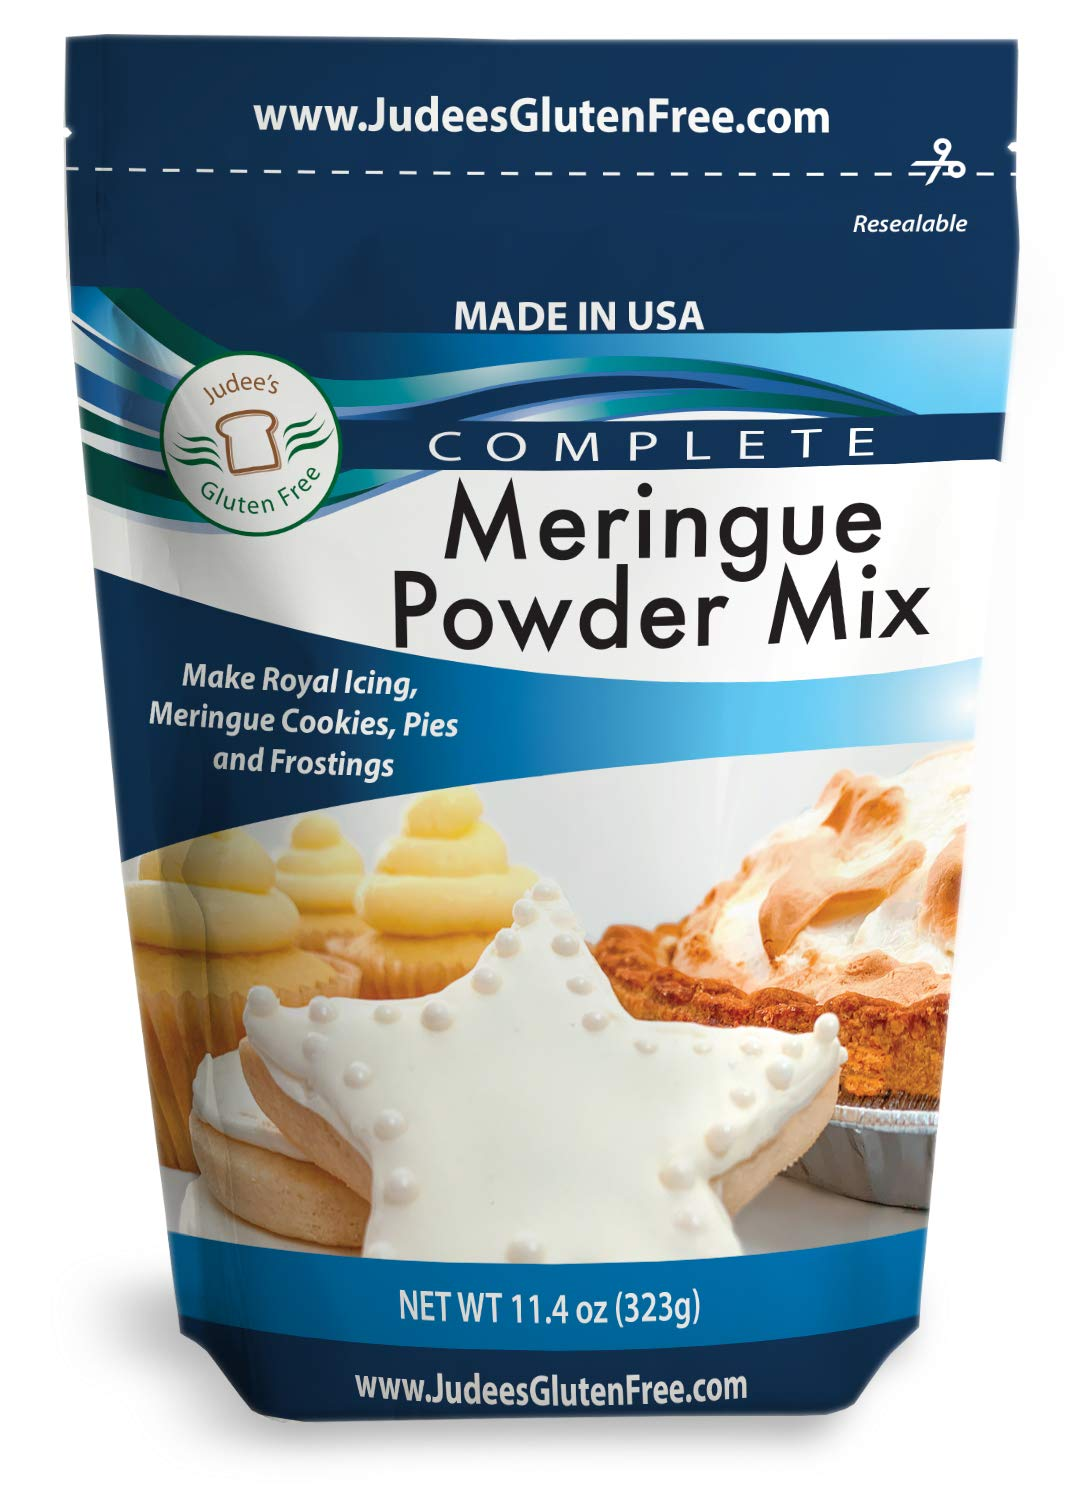 Judee's Meringue Powder Mix (11.4 Oz): Make Cookies, Pies, and Royal Icing. Complete Mix: Just Add Water. USA Made in a Dedicated Gluten & Nut Free Facility, No Preservatives, (10lb Bulk Size Also)